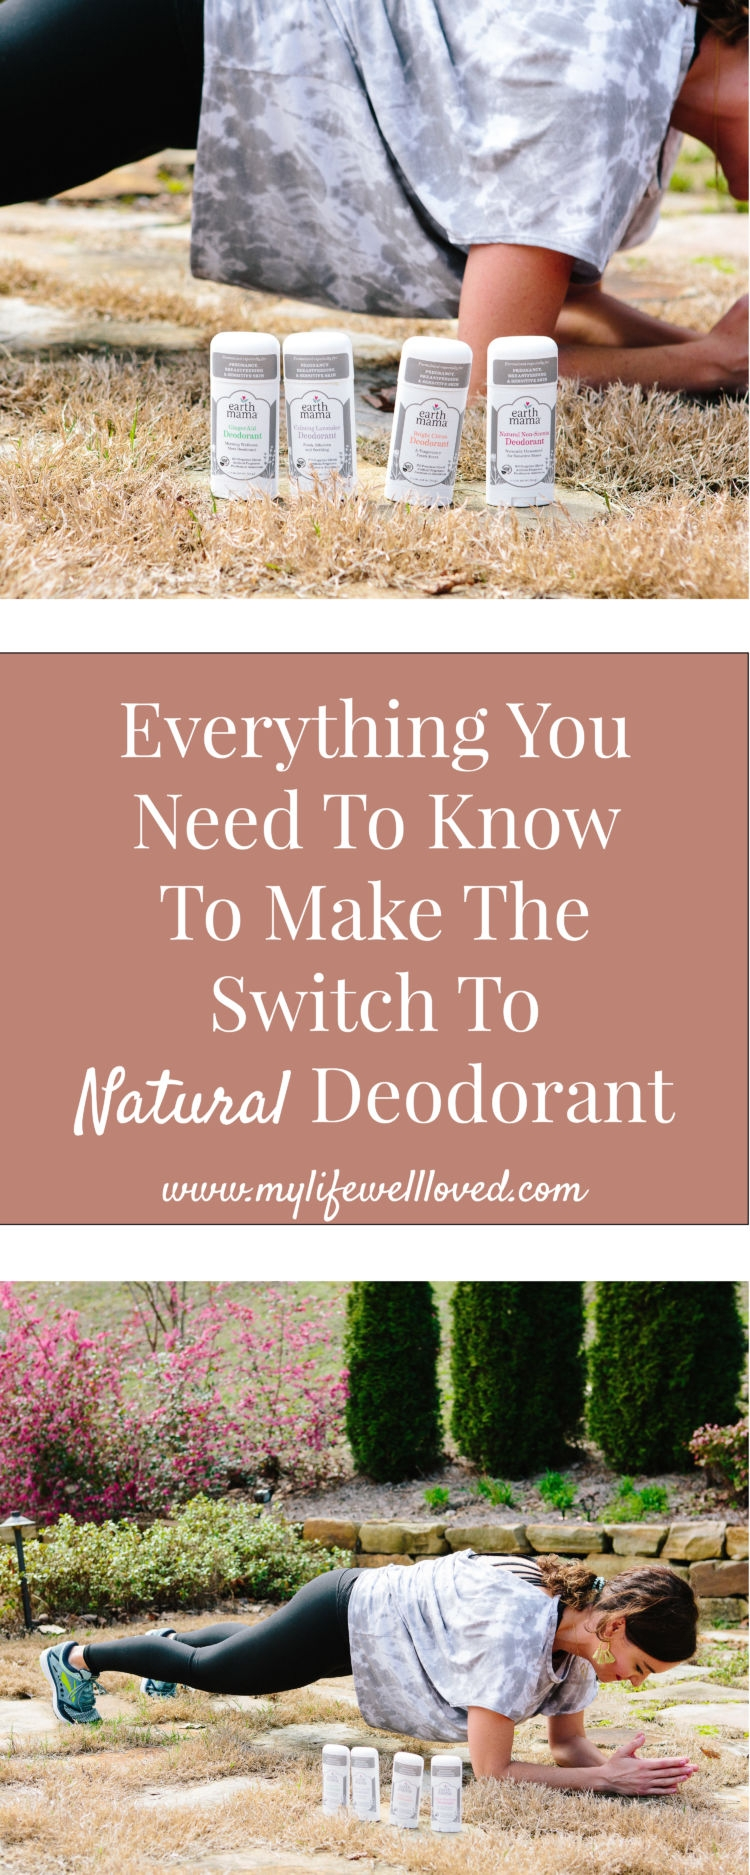 Everything you need to know to make the switch to natural deodorant (including how to detox your arm pits) and the best natural deodorant I've found. Earth Mama Organic deodorant #NaturalDeodorant #athleisure #workout